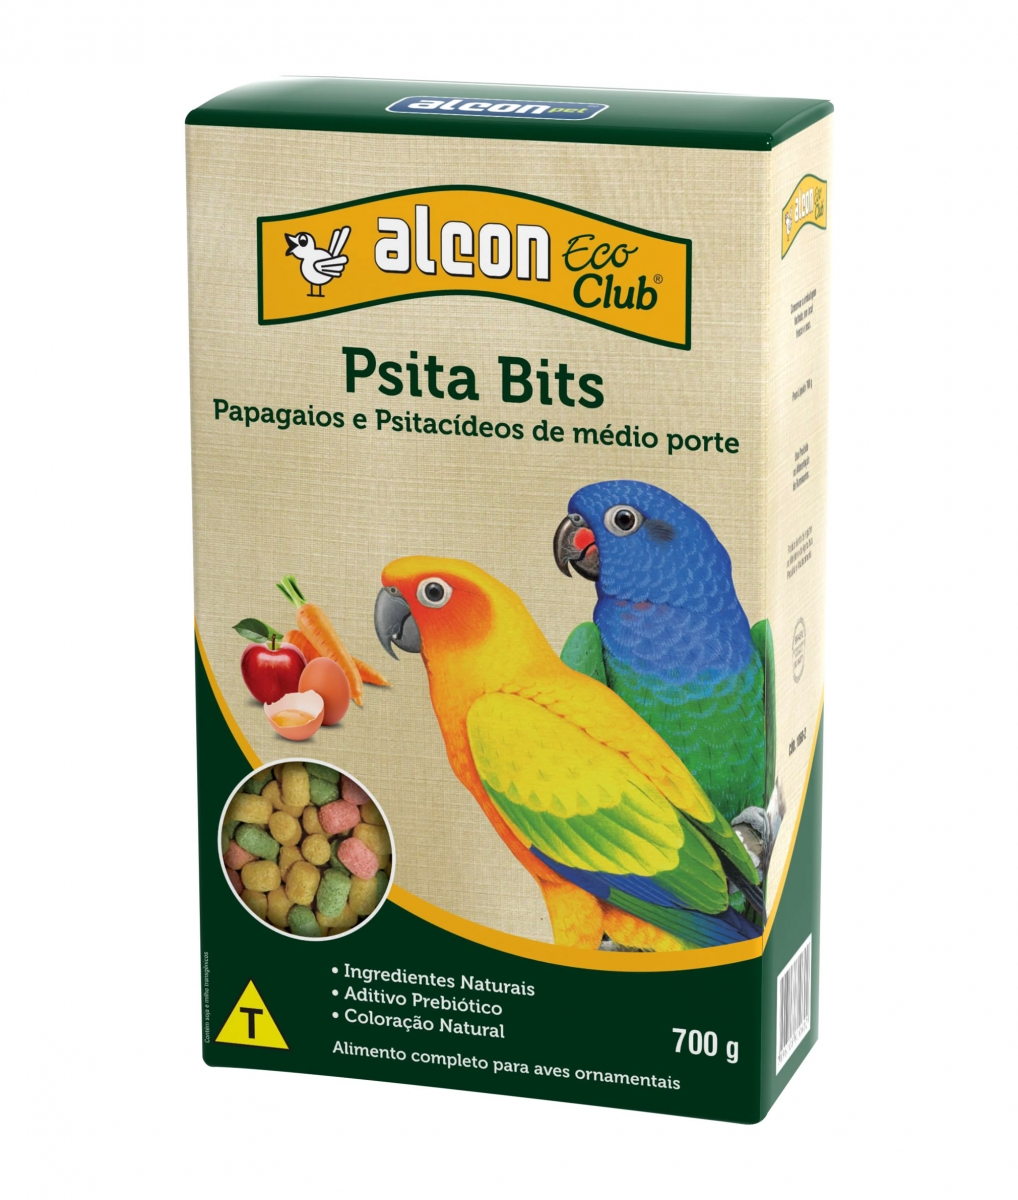 ALCON ECO CLUB PSITA BITS 700G